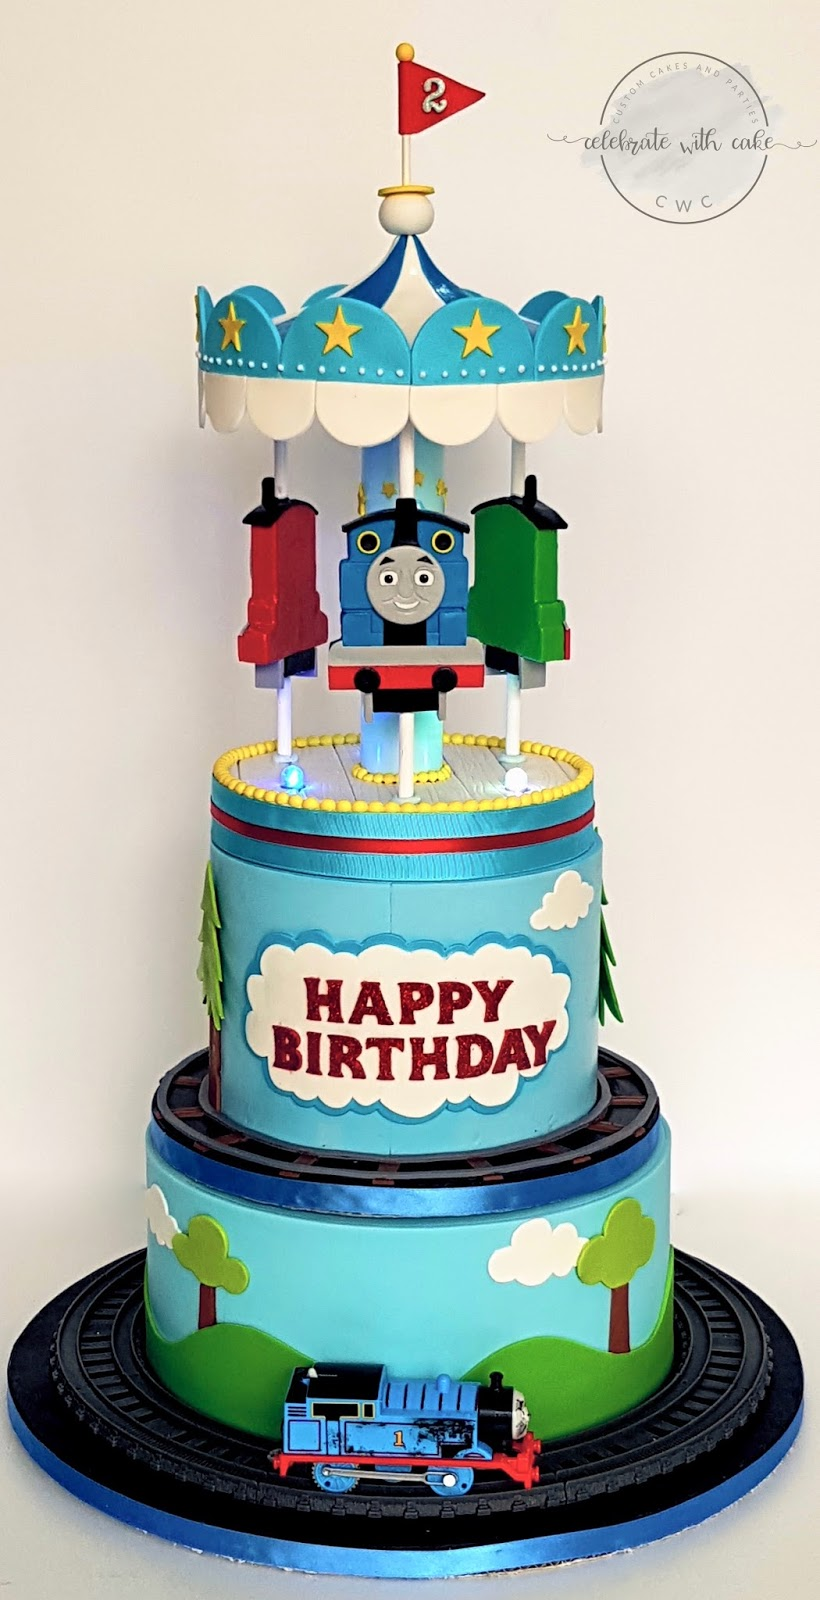 Celebrate With Cake Thomas The Tank Themed Rotating Carousel With